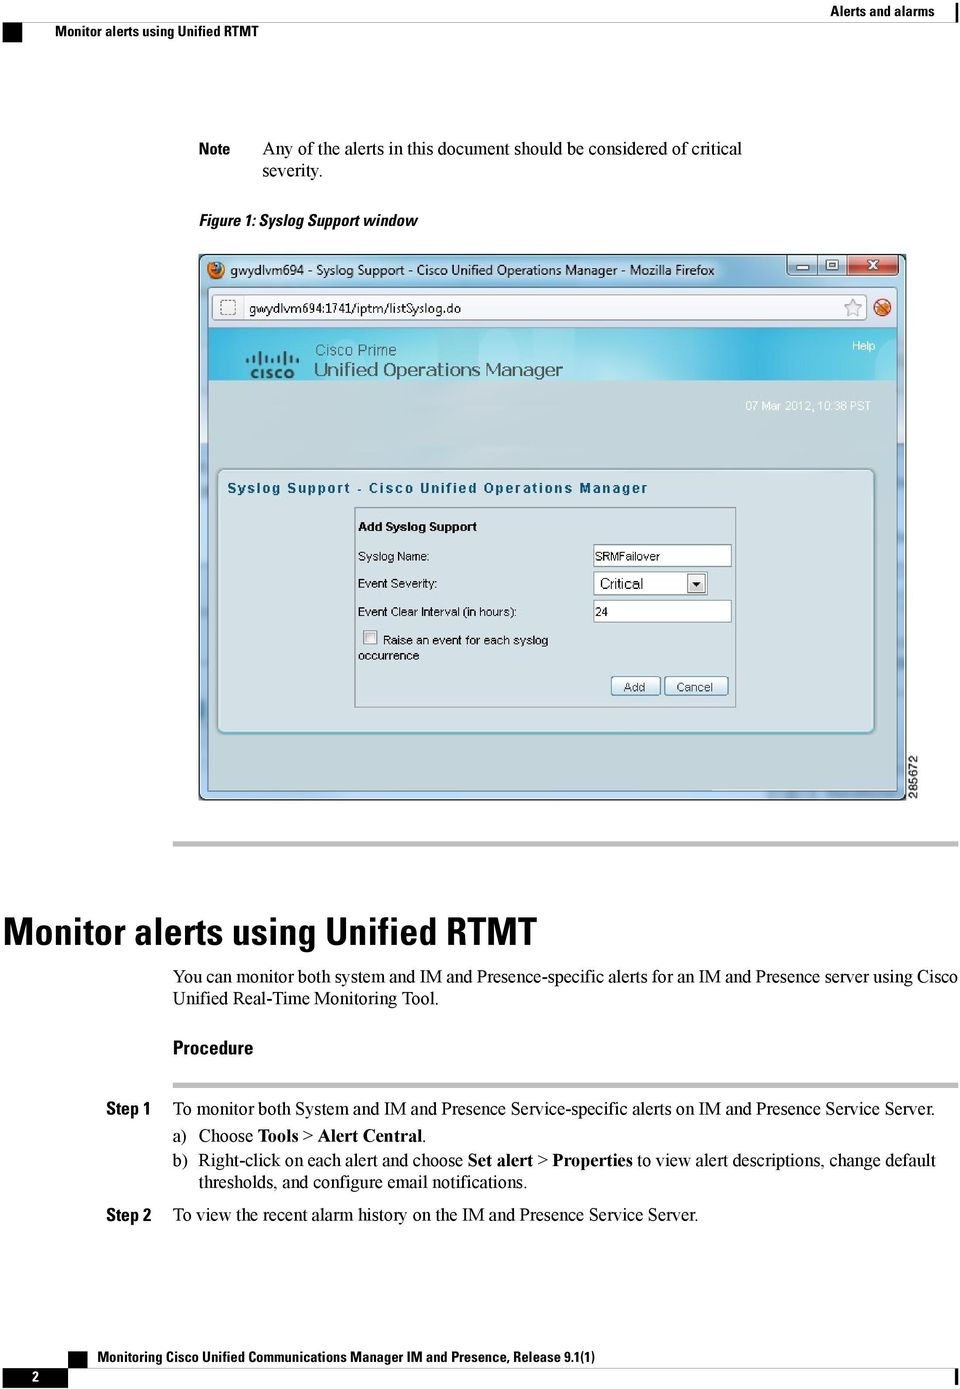 Monitoring Cisco Unified Communications Manager IM and Presence